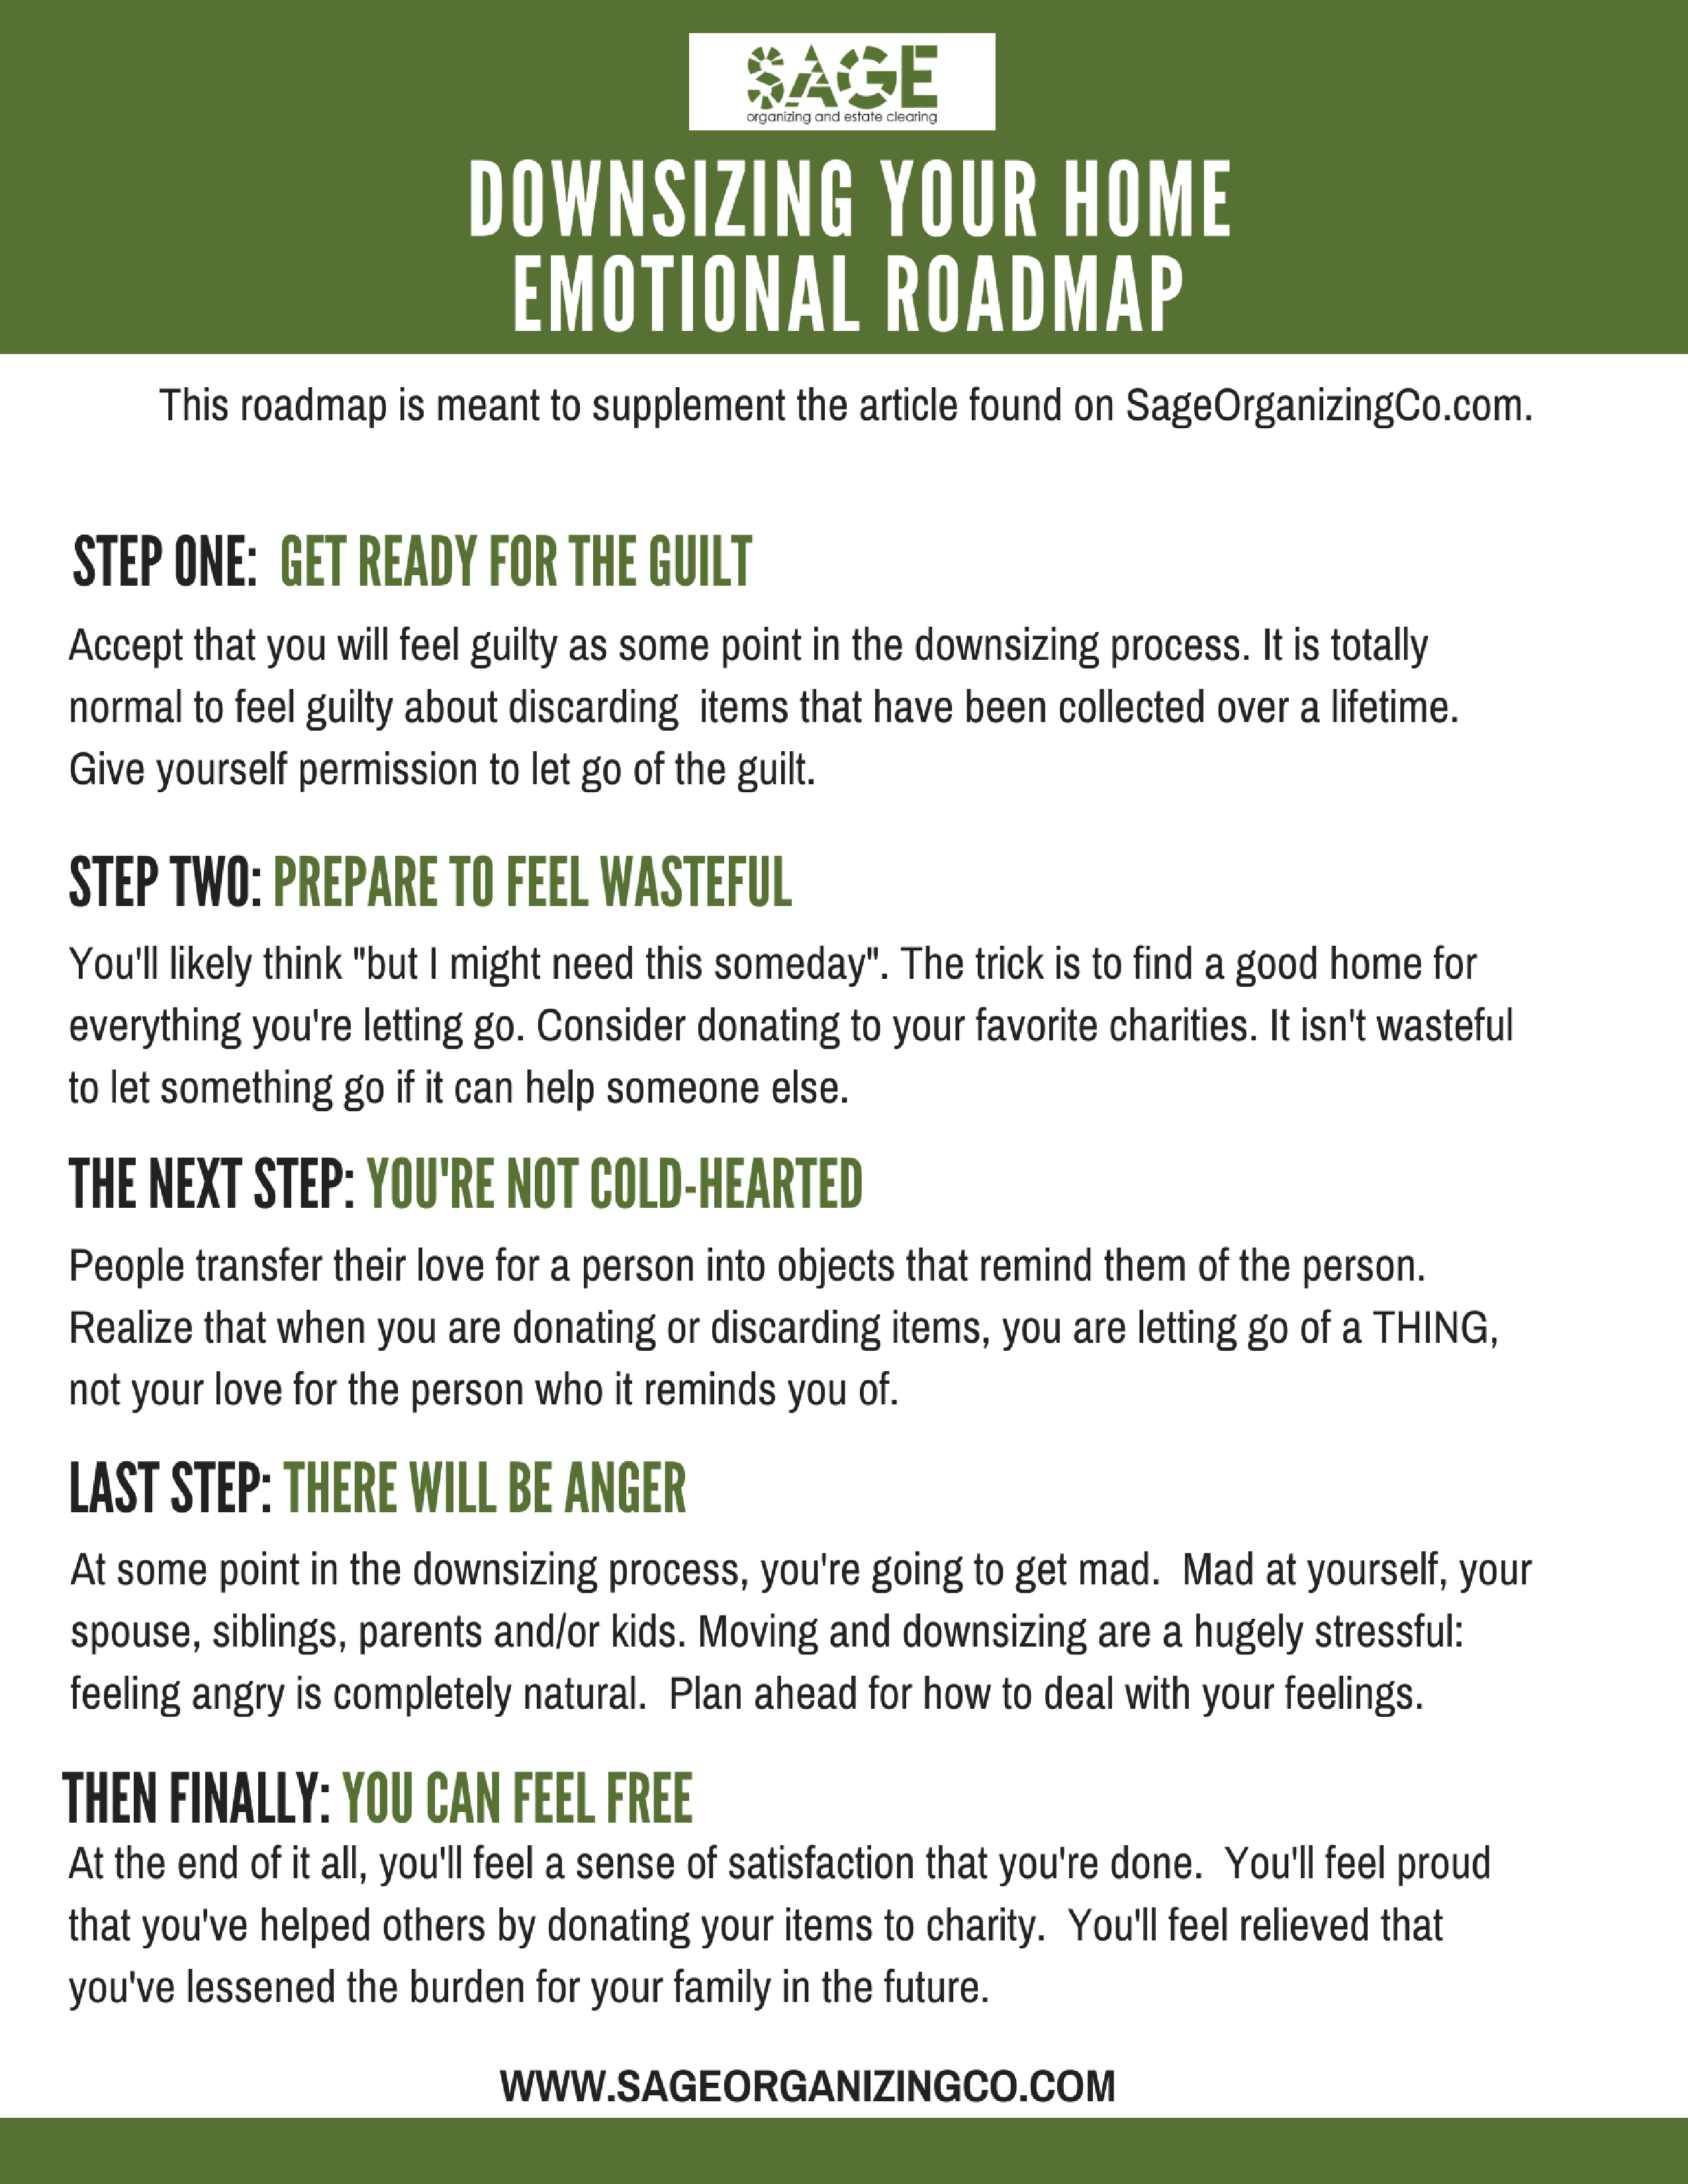 Downsizing Your Home Emotional Roadmap